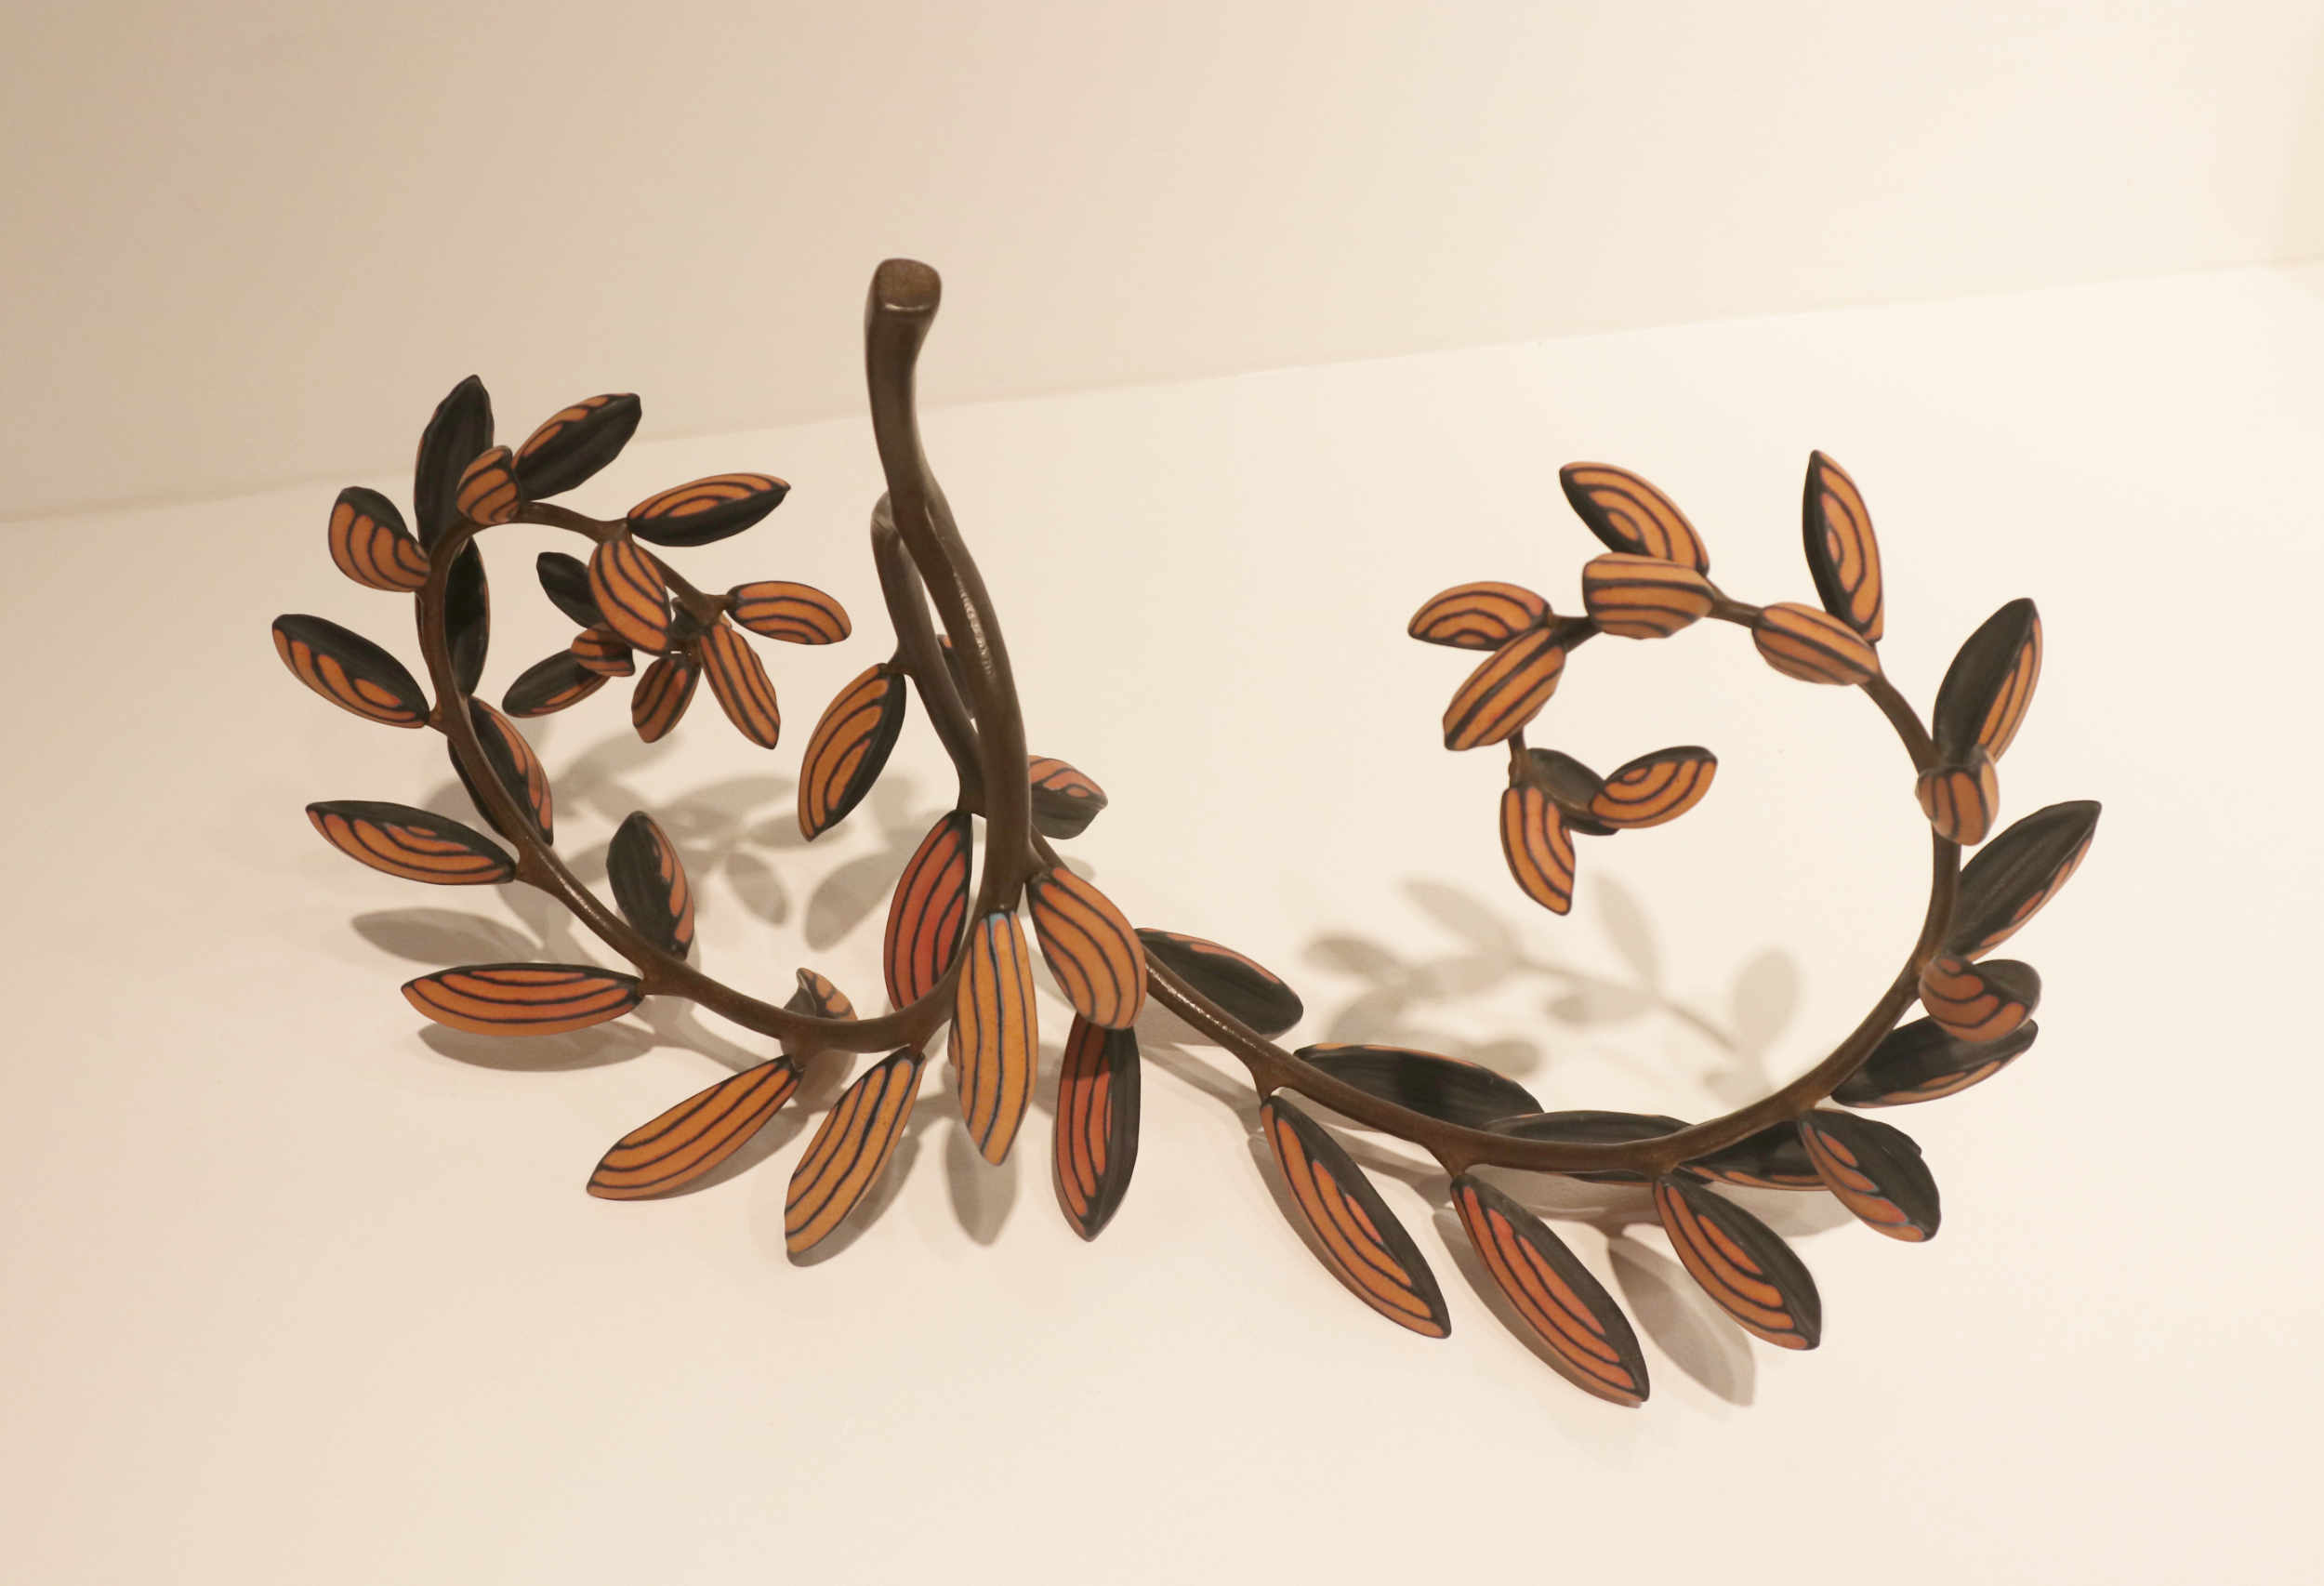 Michael Sherrill, Honey Locust, 2001. Porcelain, forged steel.